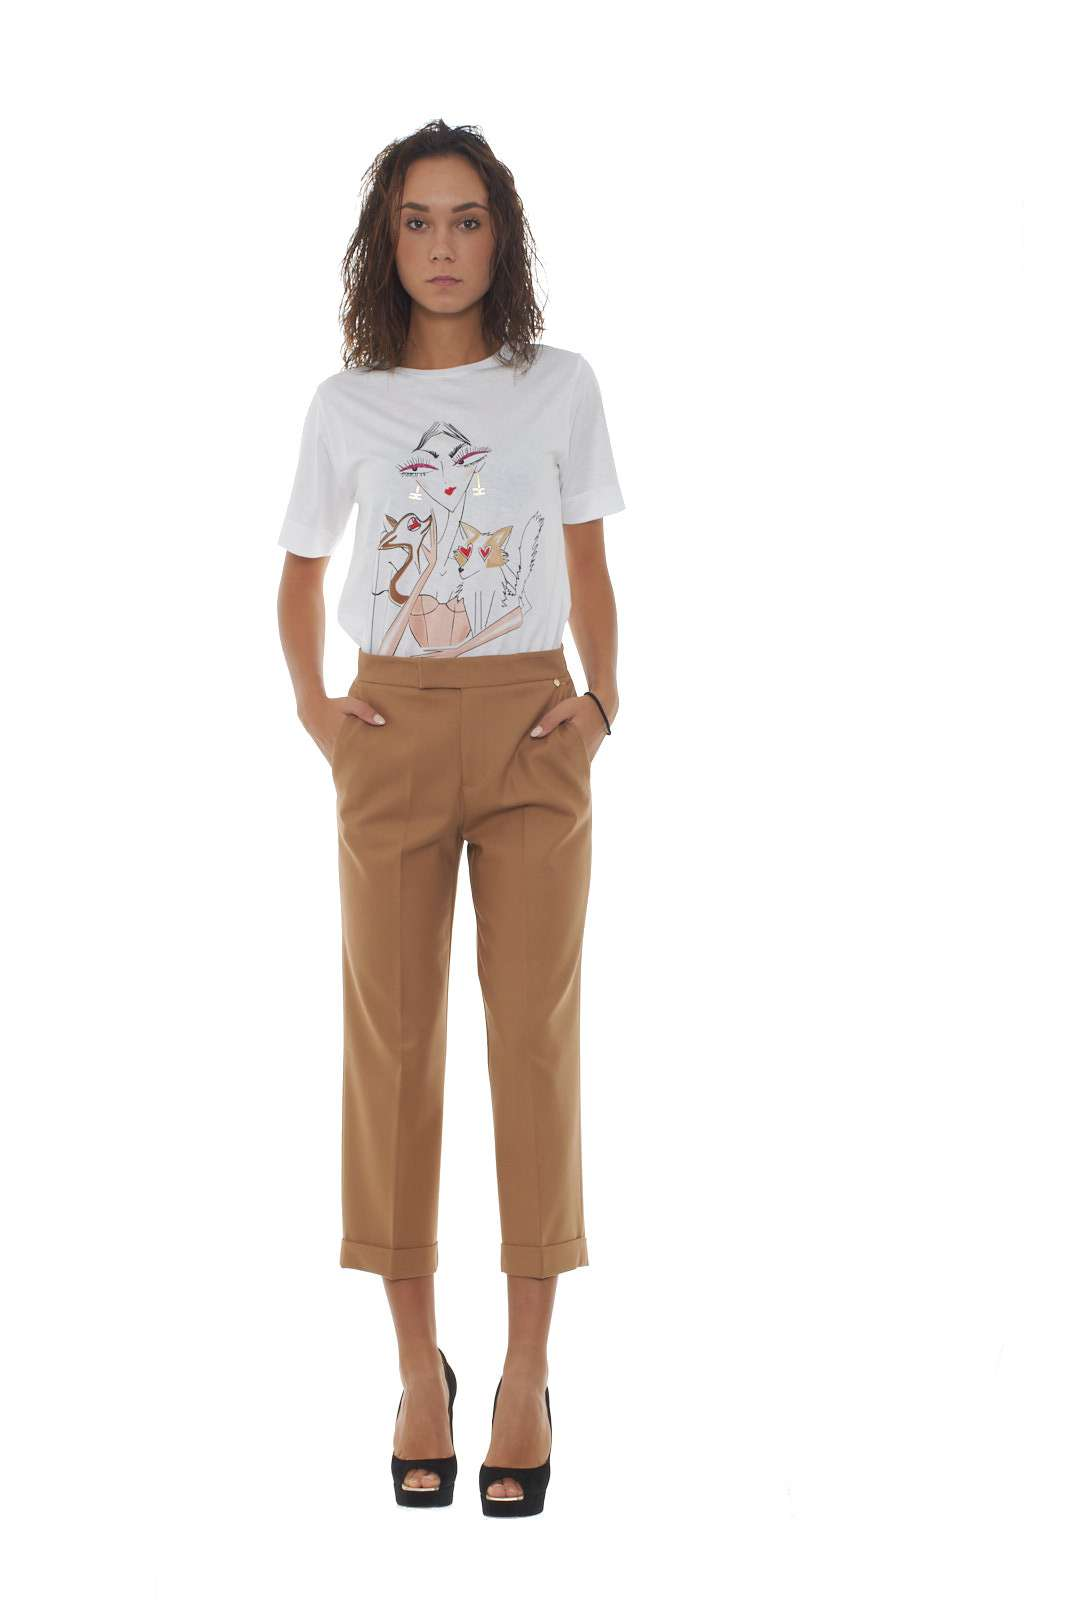 https://www.parmax.com/media/catalog/product/a/i/AI-outlet_parmax-pantaloni-donna-Twin-Set-192TT2455-D.jpg